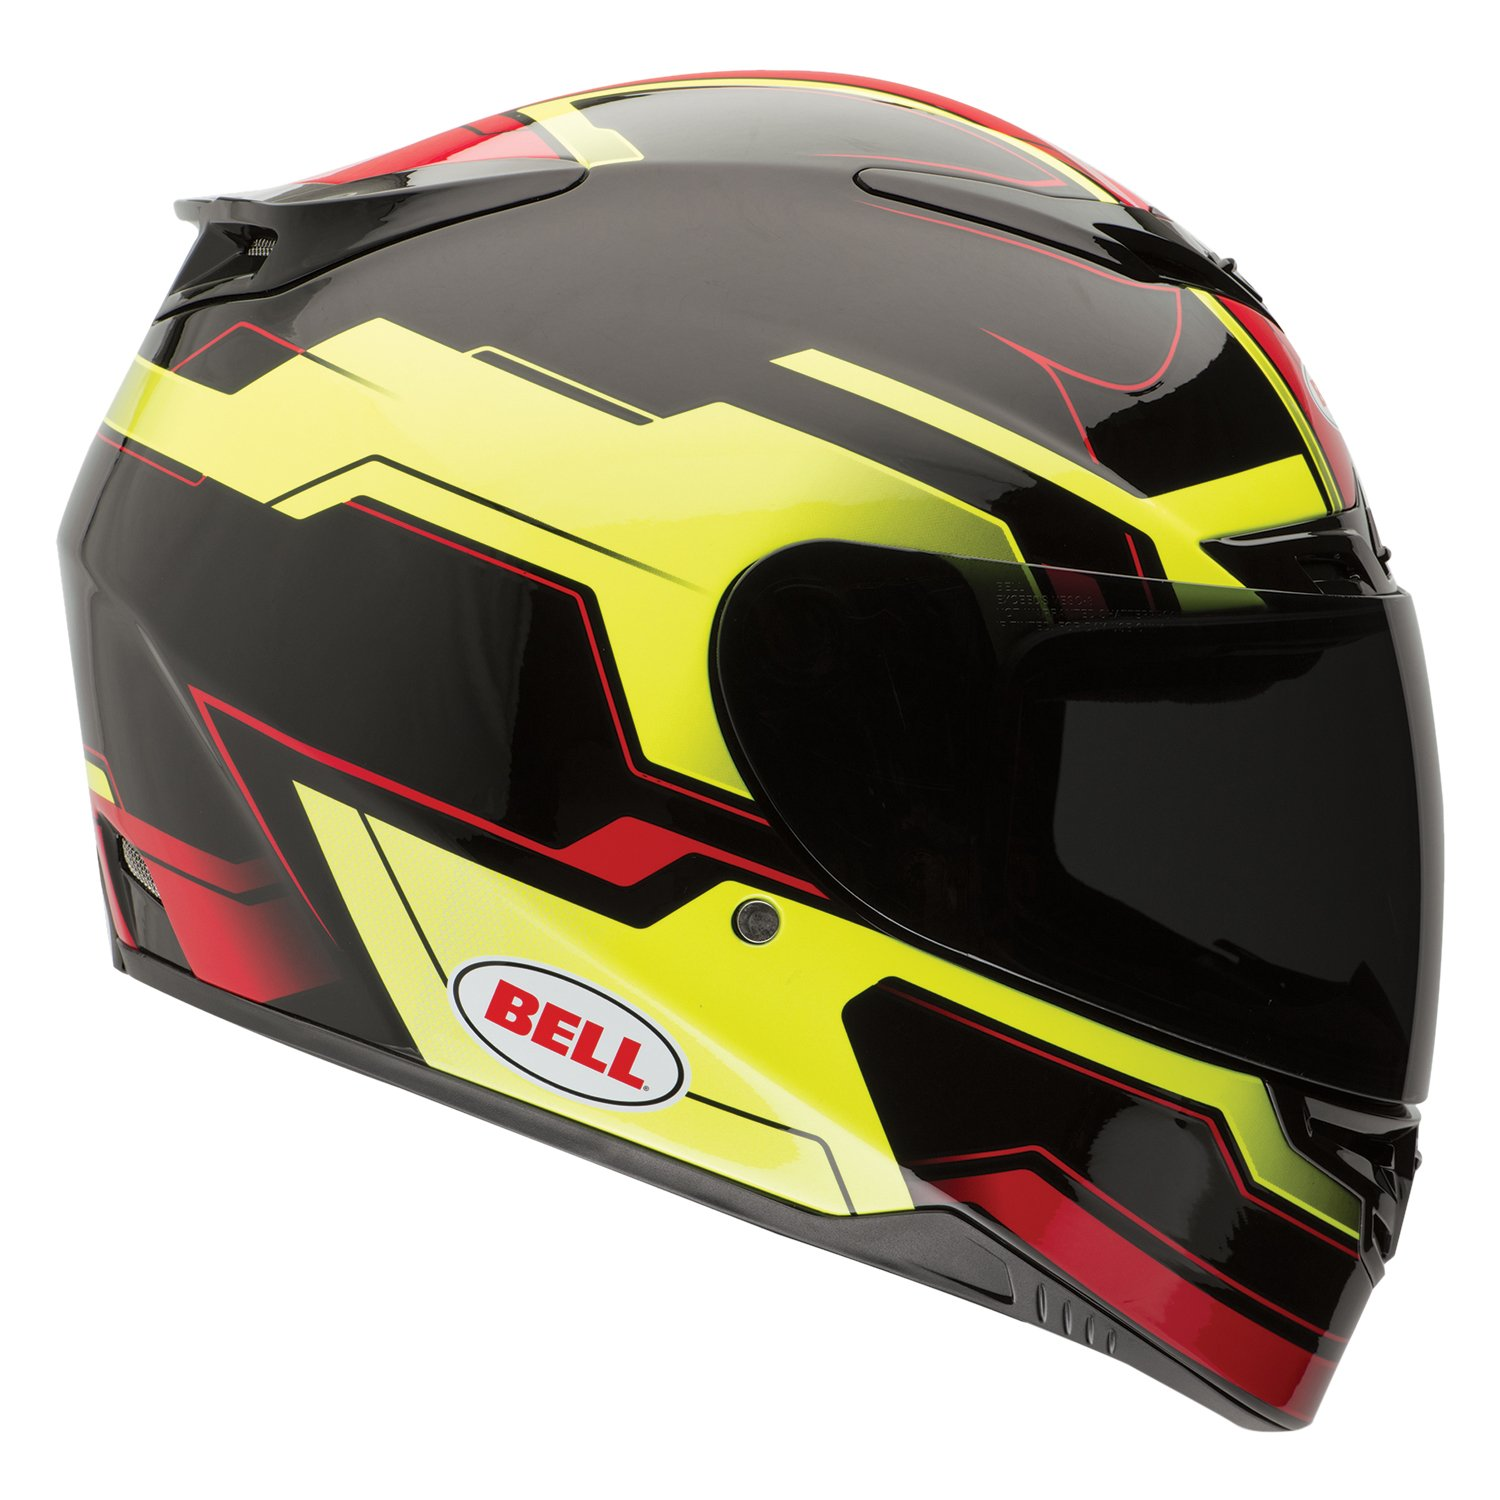 Noir Black Solid Bell Powersports Casques Street 2015 RS-1 High Visibility Casque pour Adultes ,L